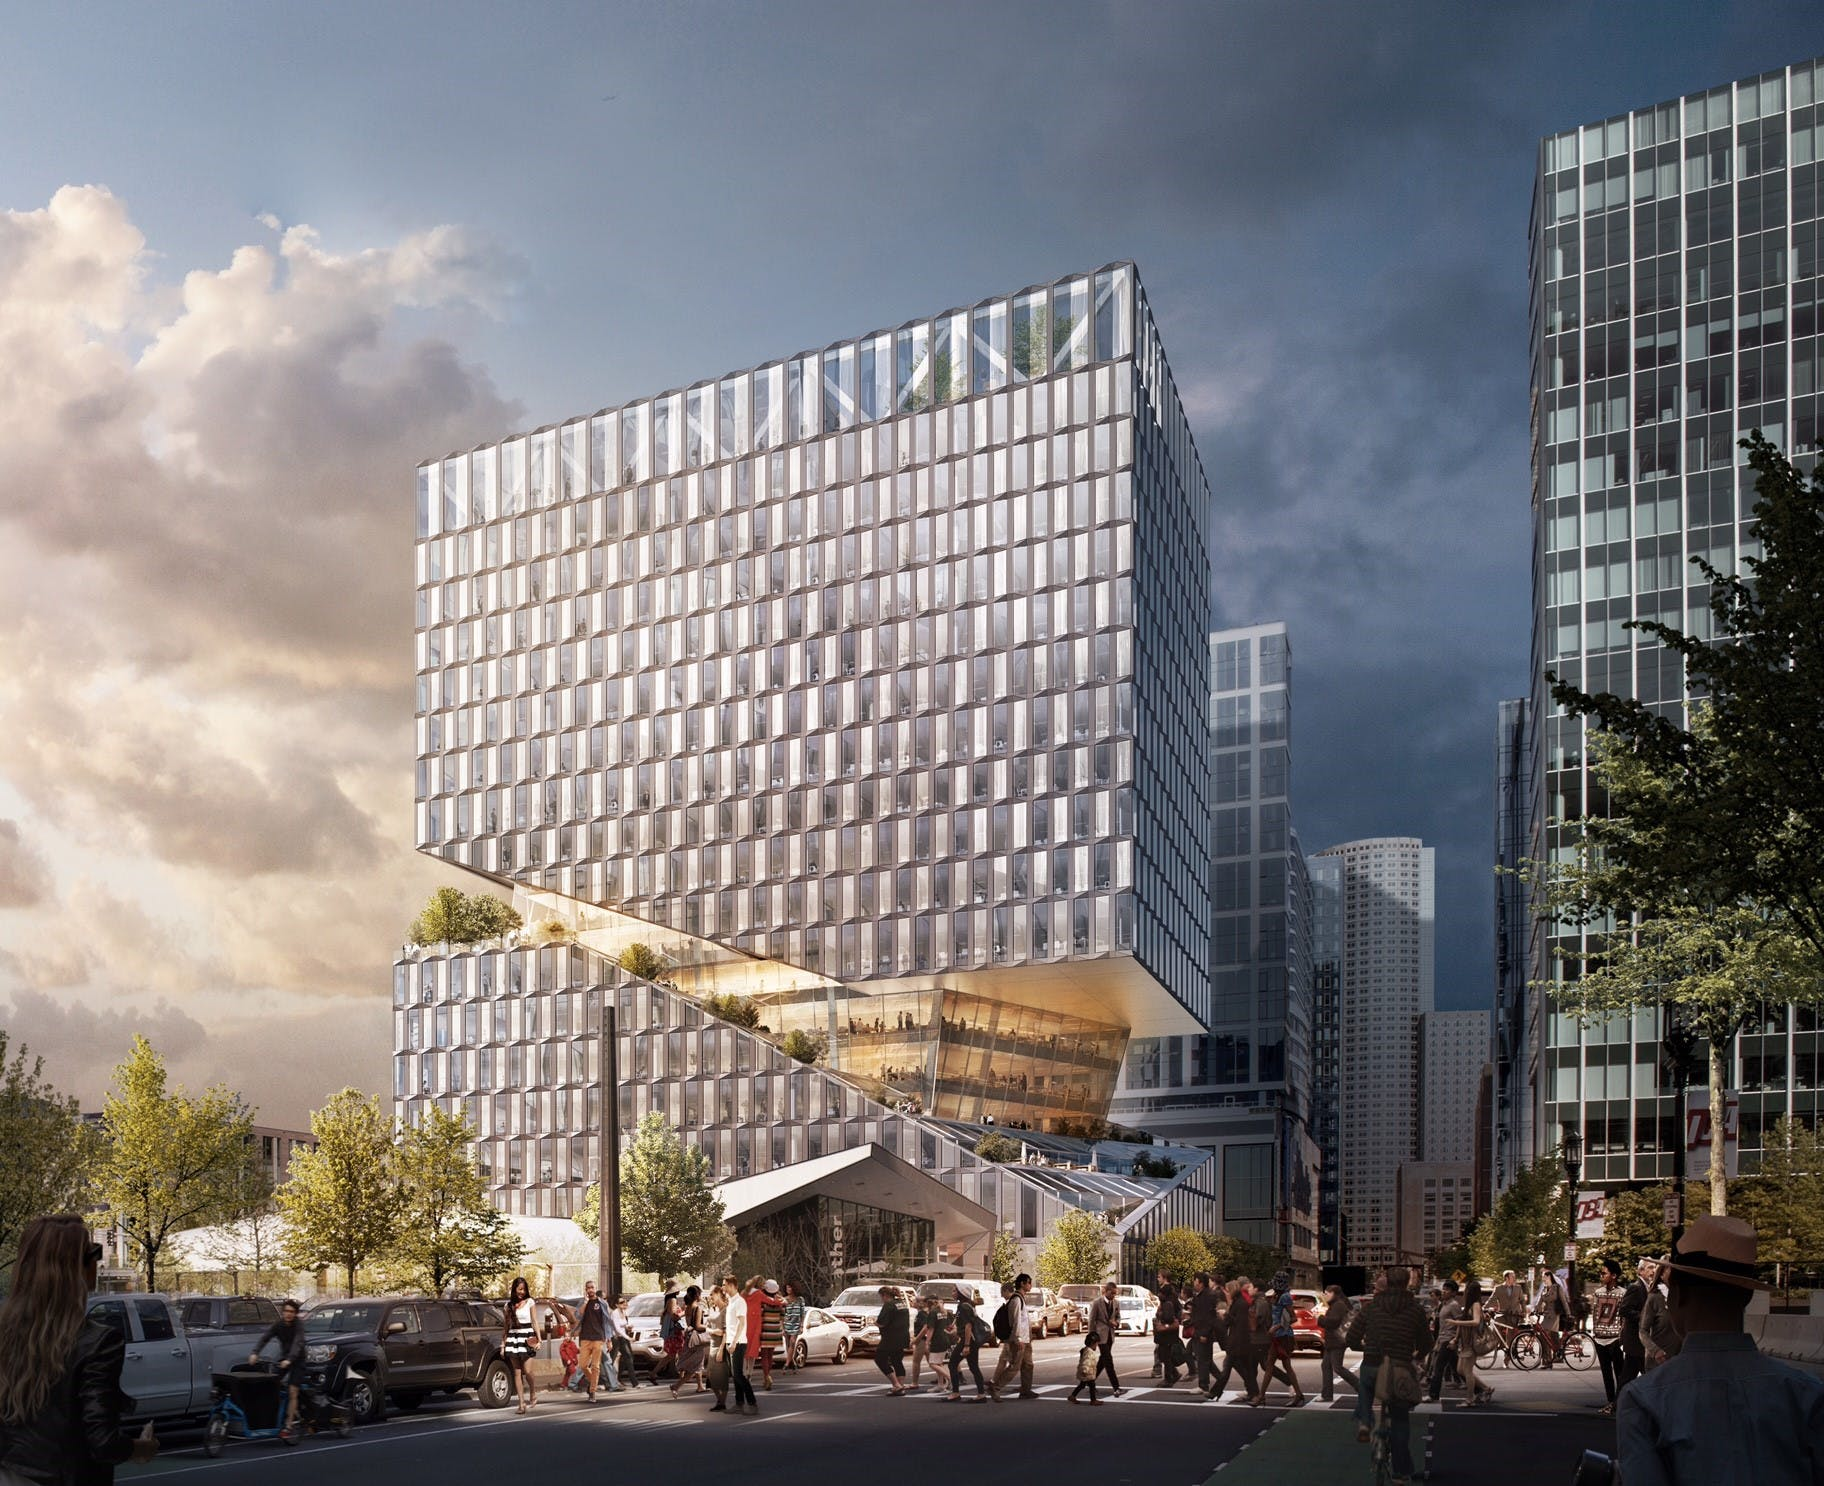 OMA embarks on first Boston commission with 88 Seaport mixed-use ...